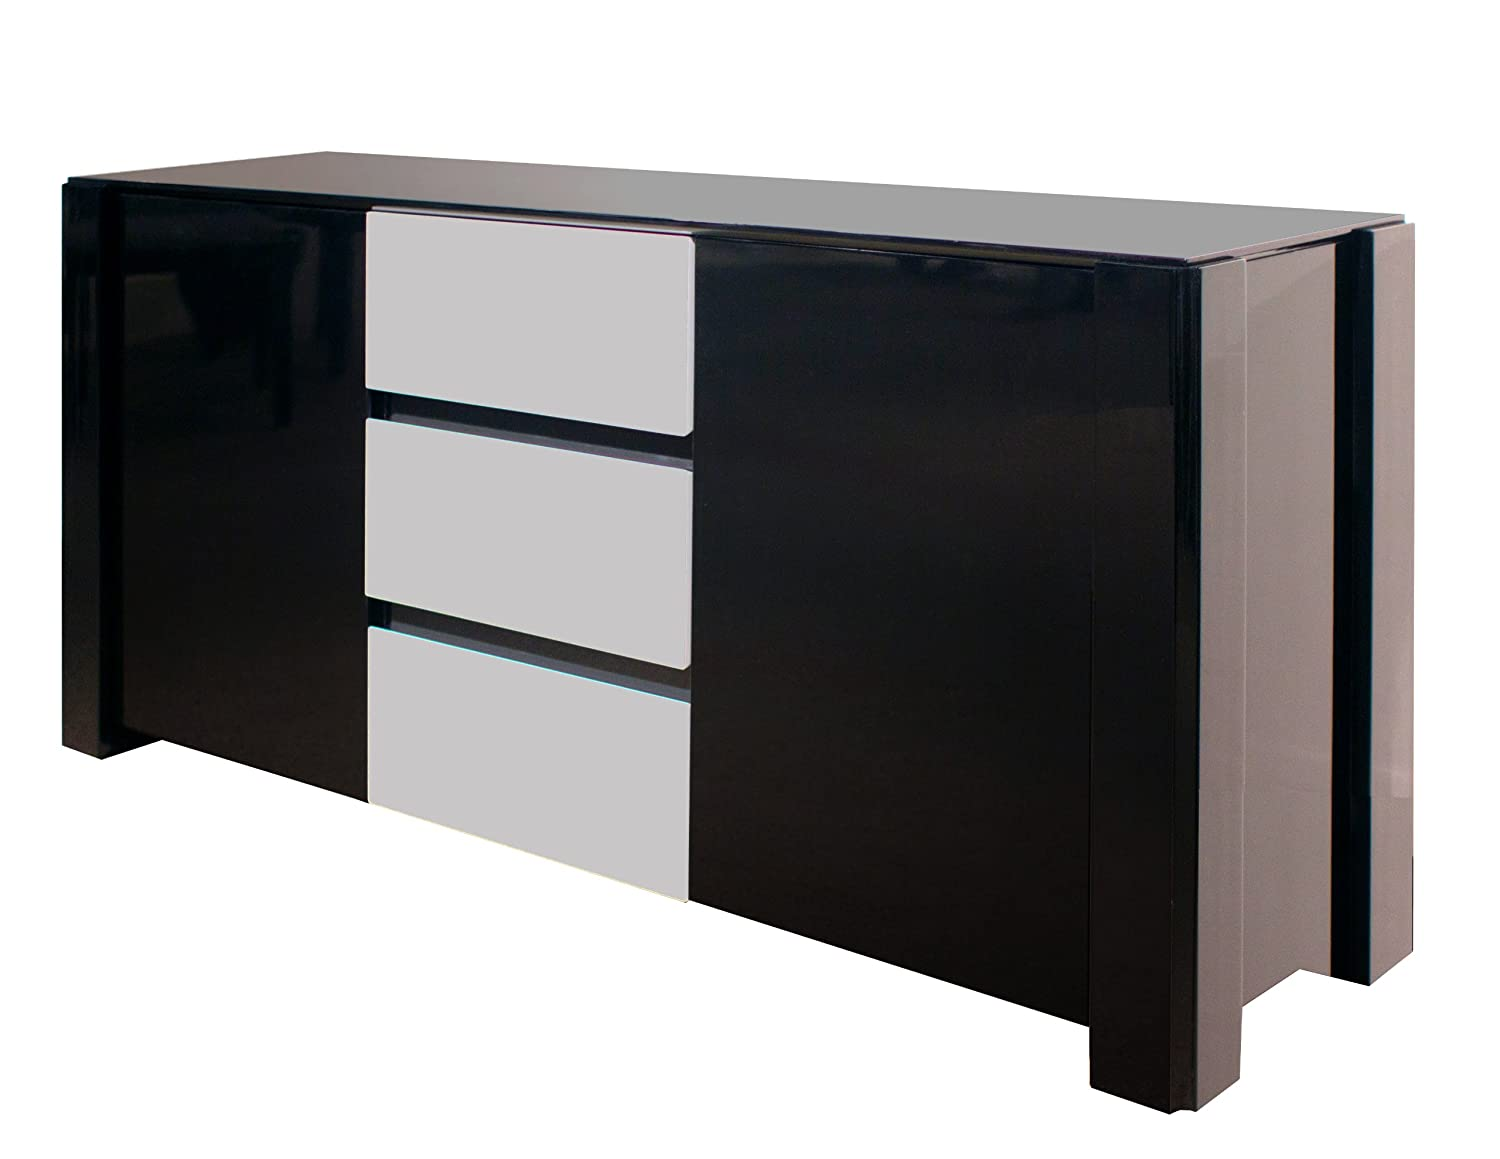 Amazon Com Sharelle Furnishings Natalia Black Lacquer Buffet